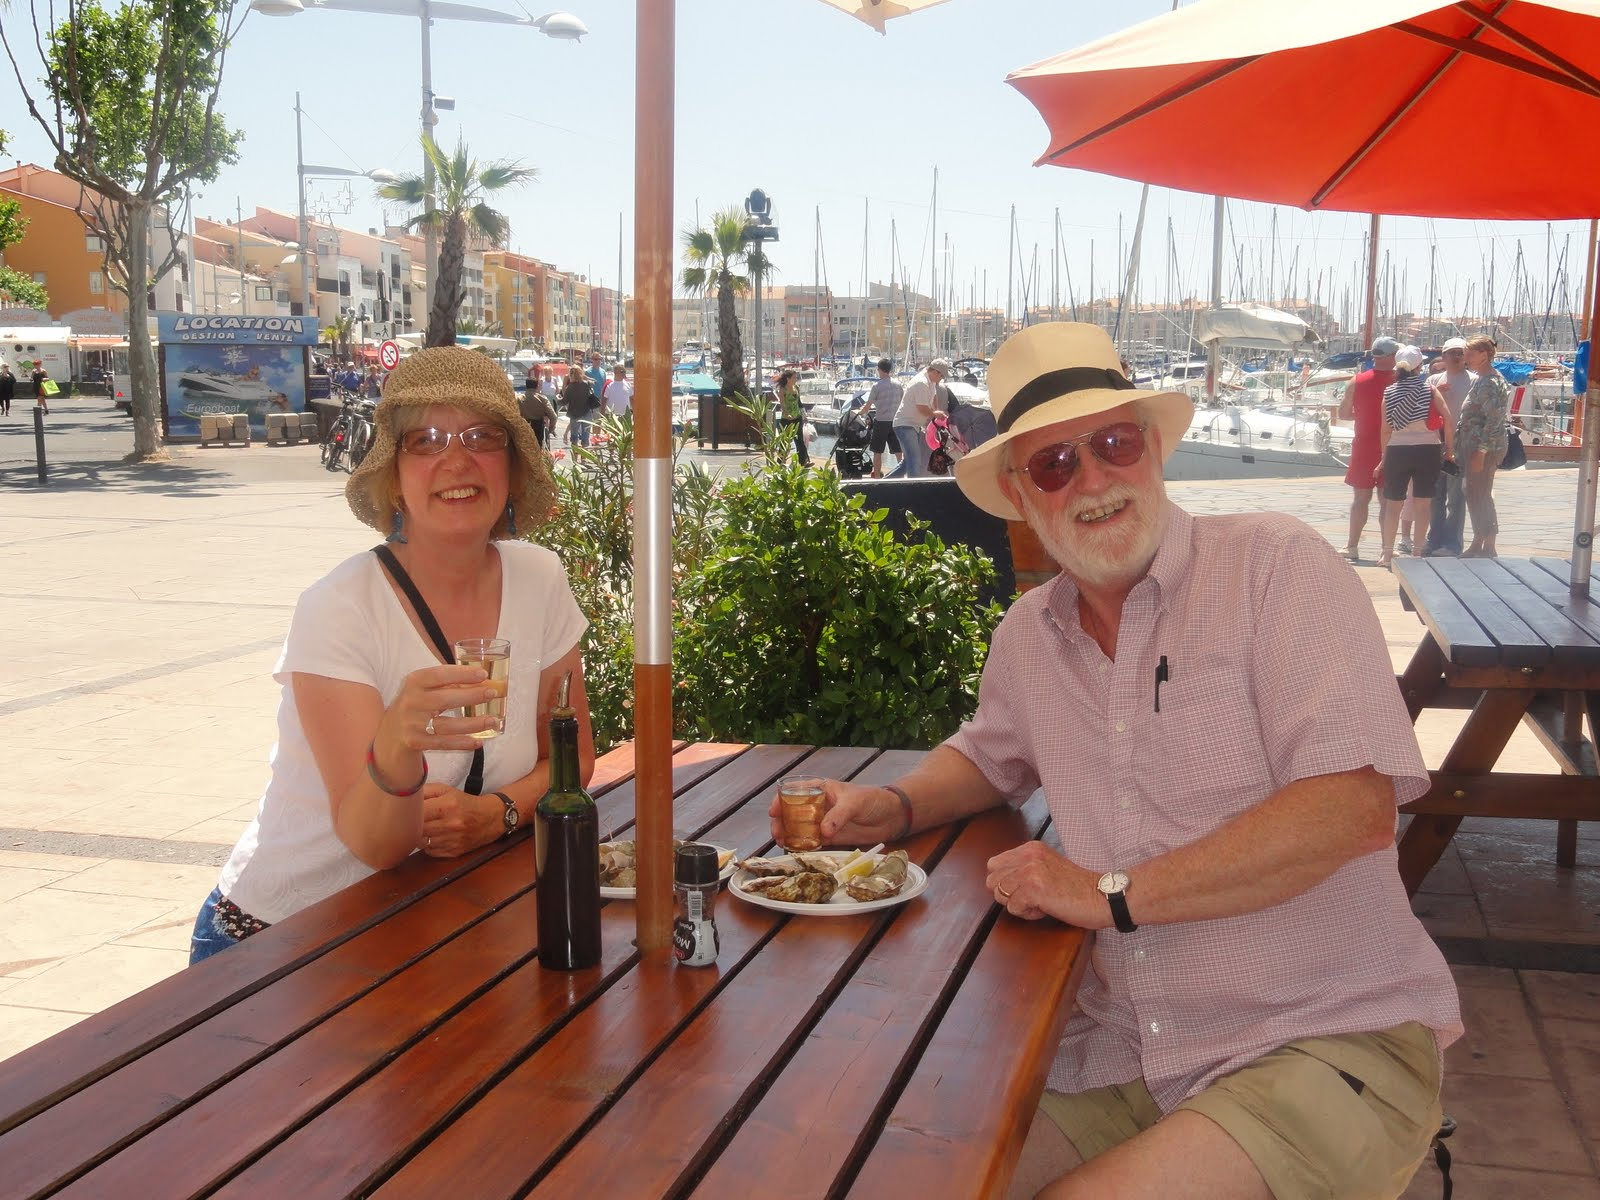 We Arrived Here Last Saturday Via Sete A Port On The South Coast Famous For The Seafood And Enjoyed A Wonderful Plate Of Oysters And Langoustines While